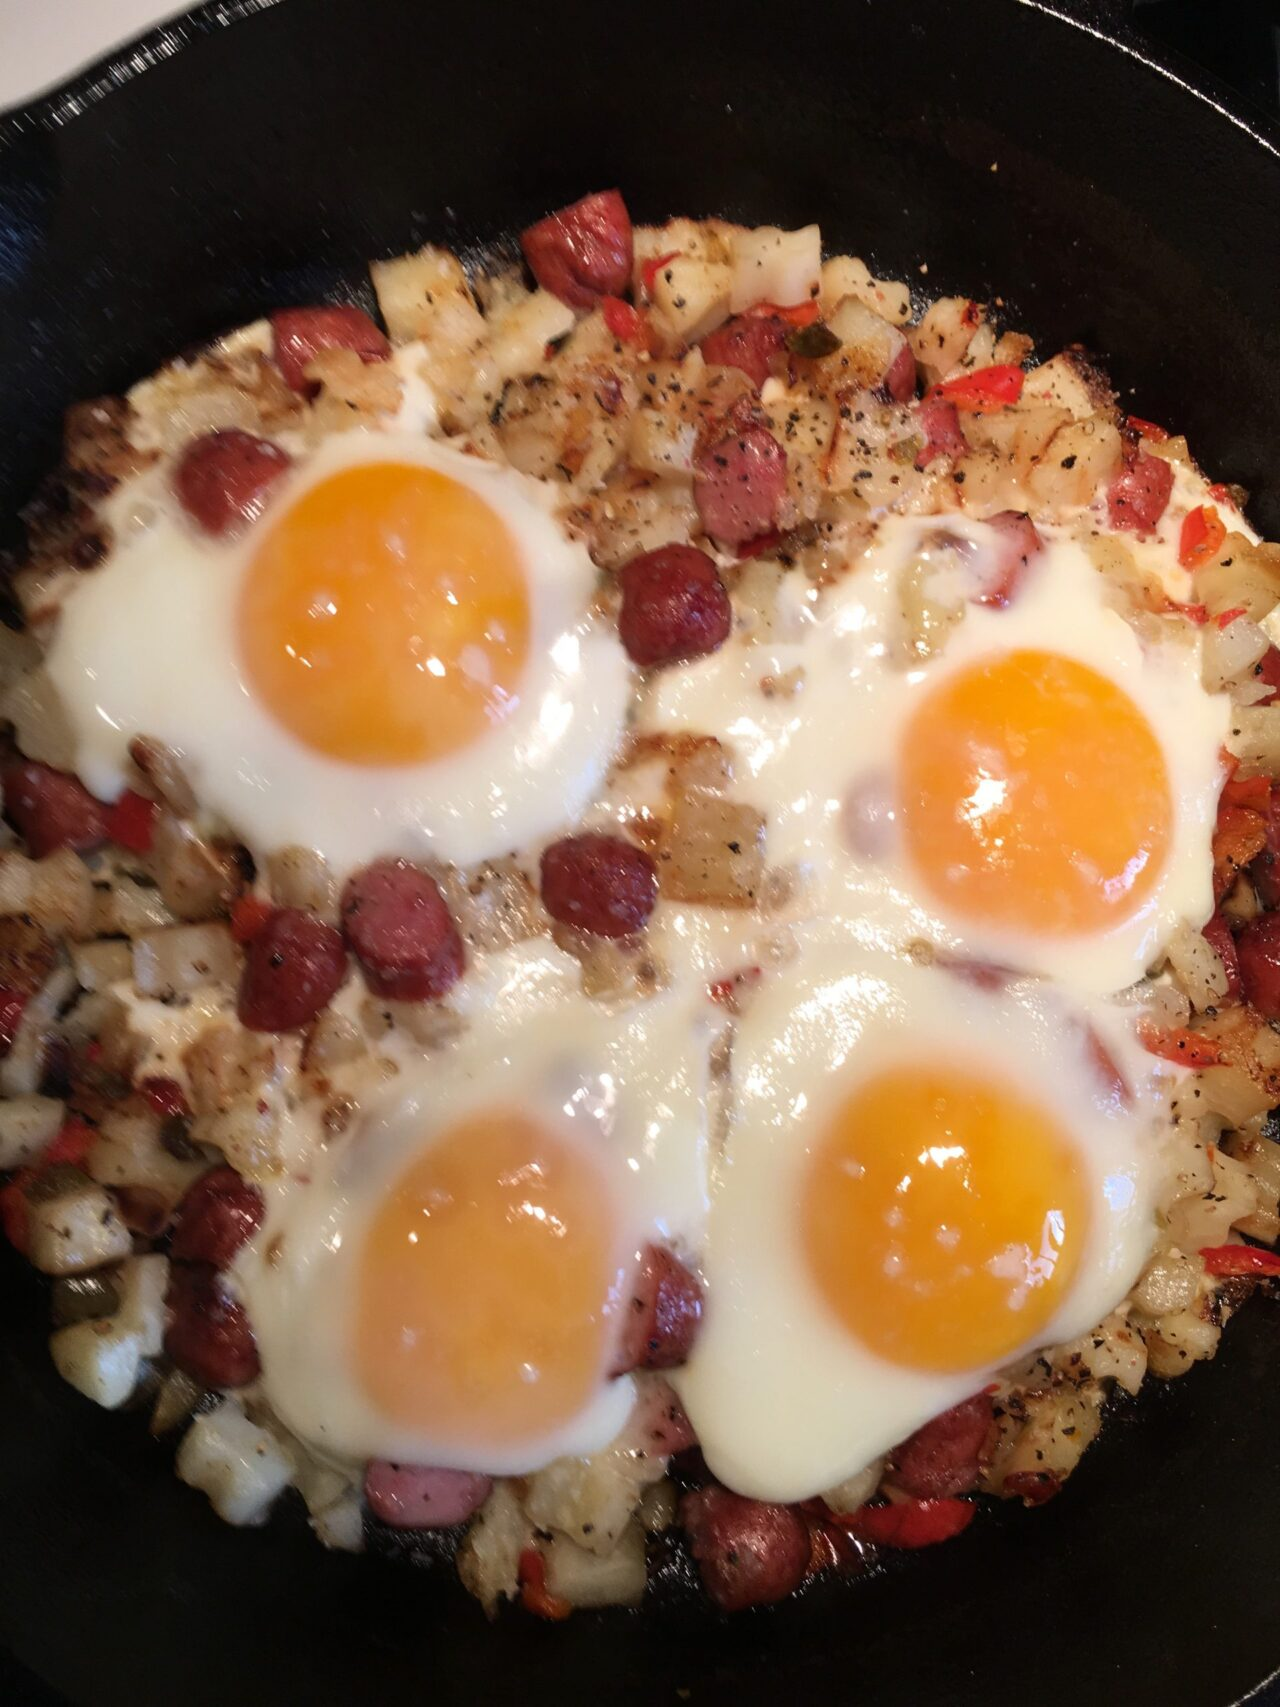 Cooked breakfast hash with eggs on top